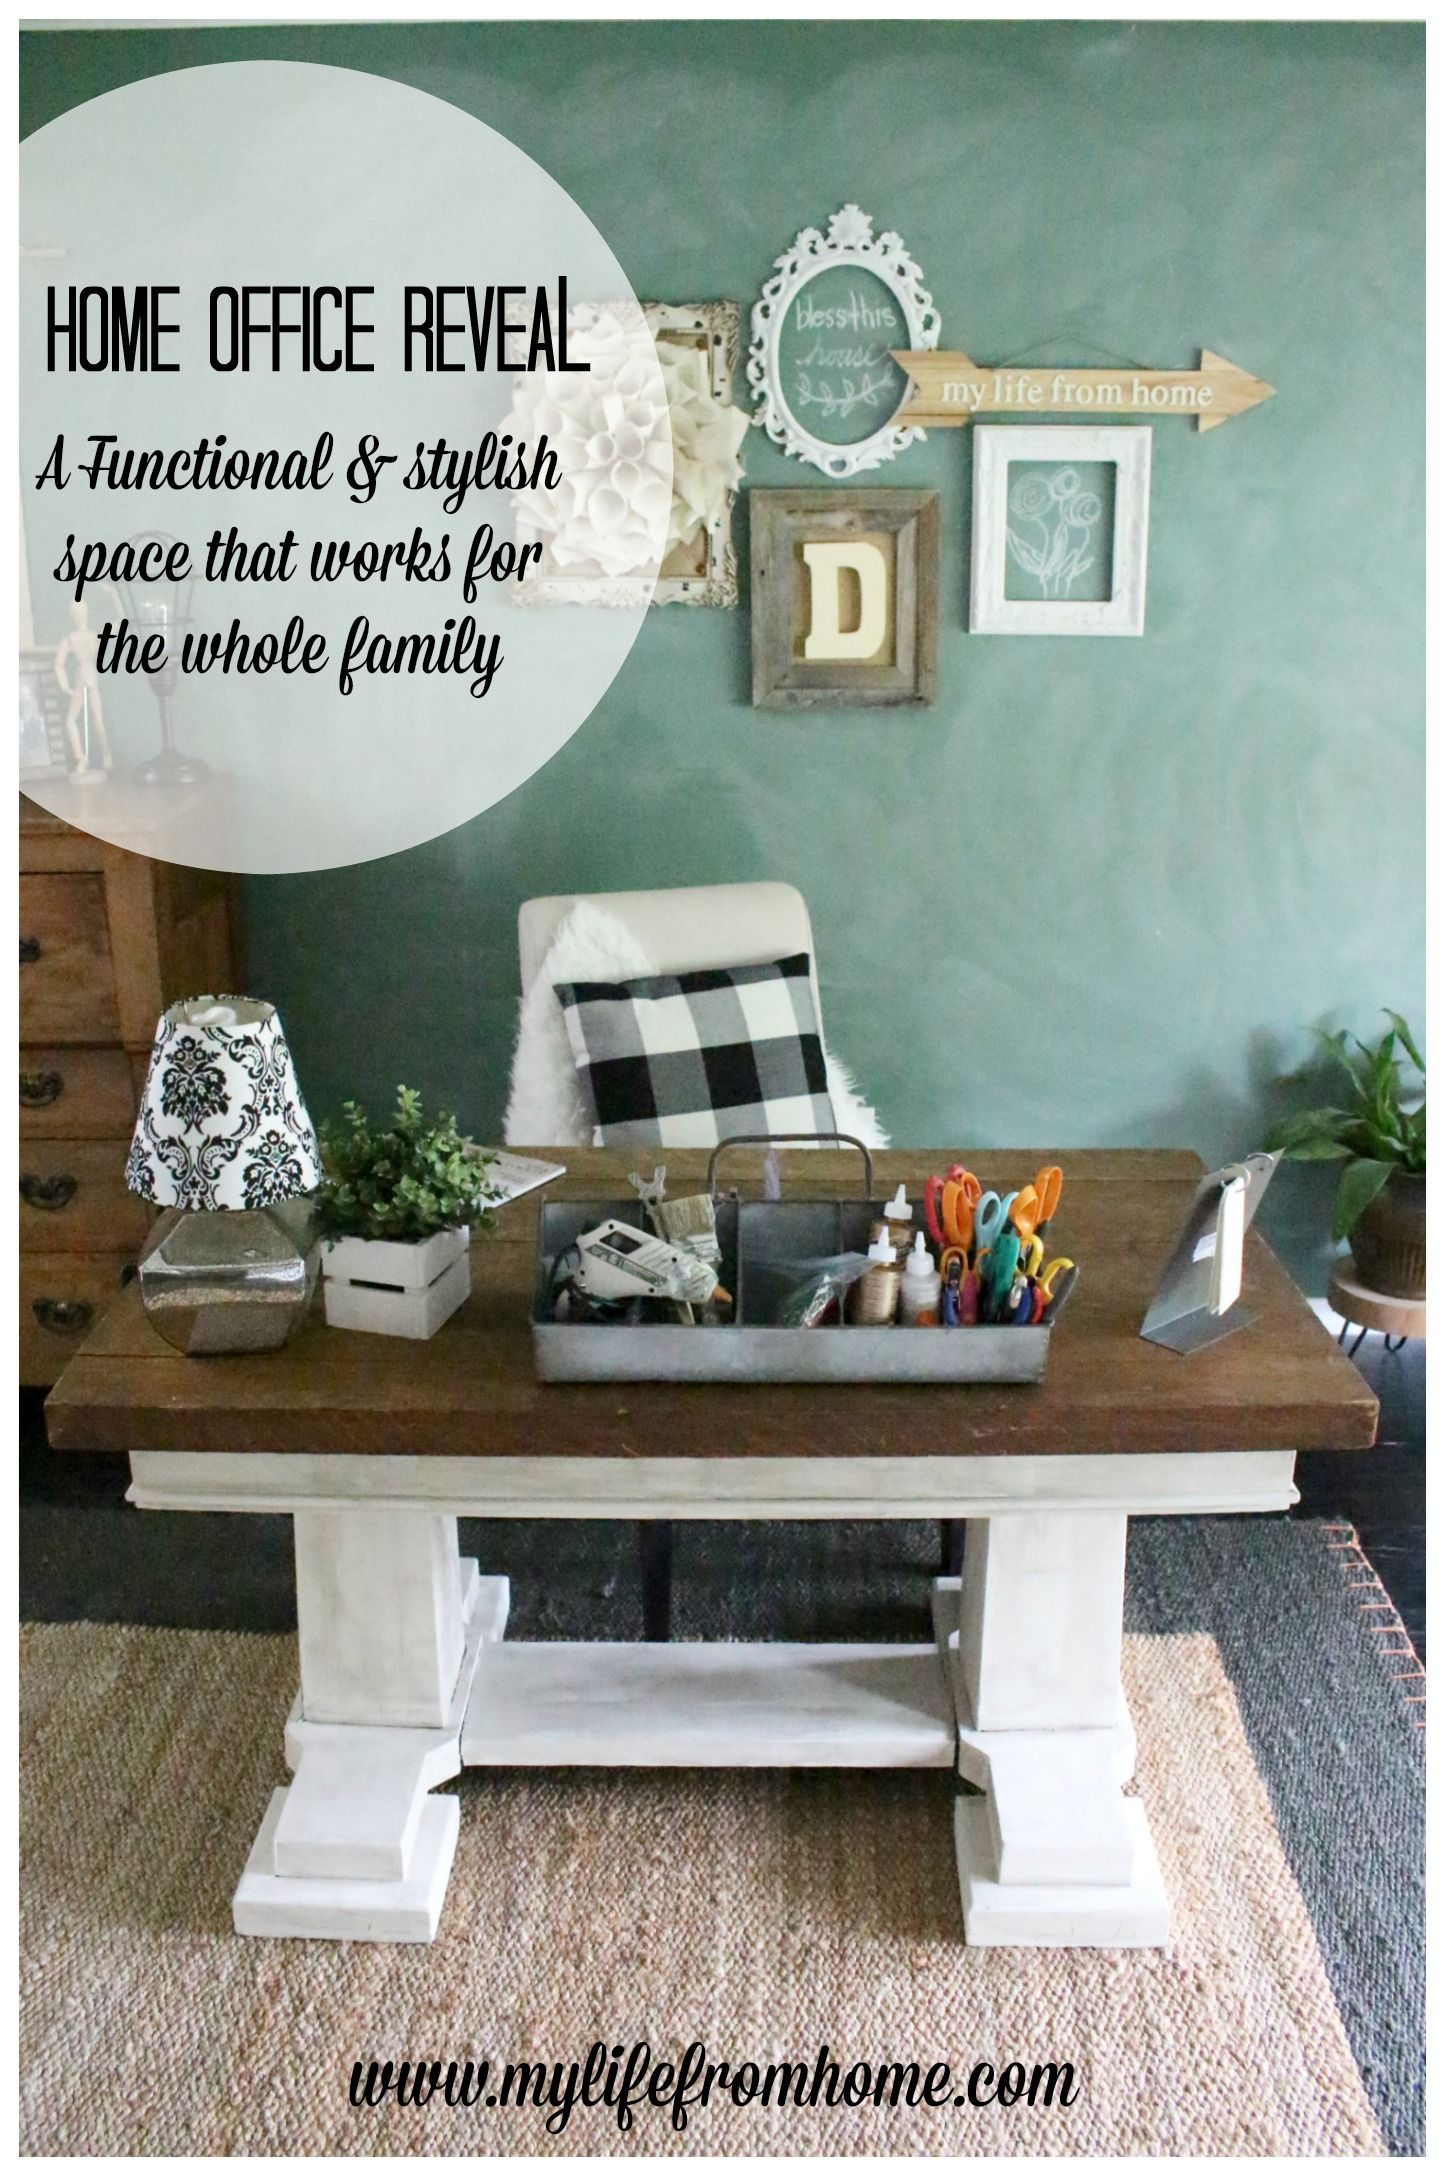 Home Office Reveal Functional And Stylish Craft Room Space